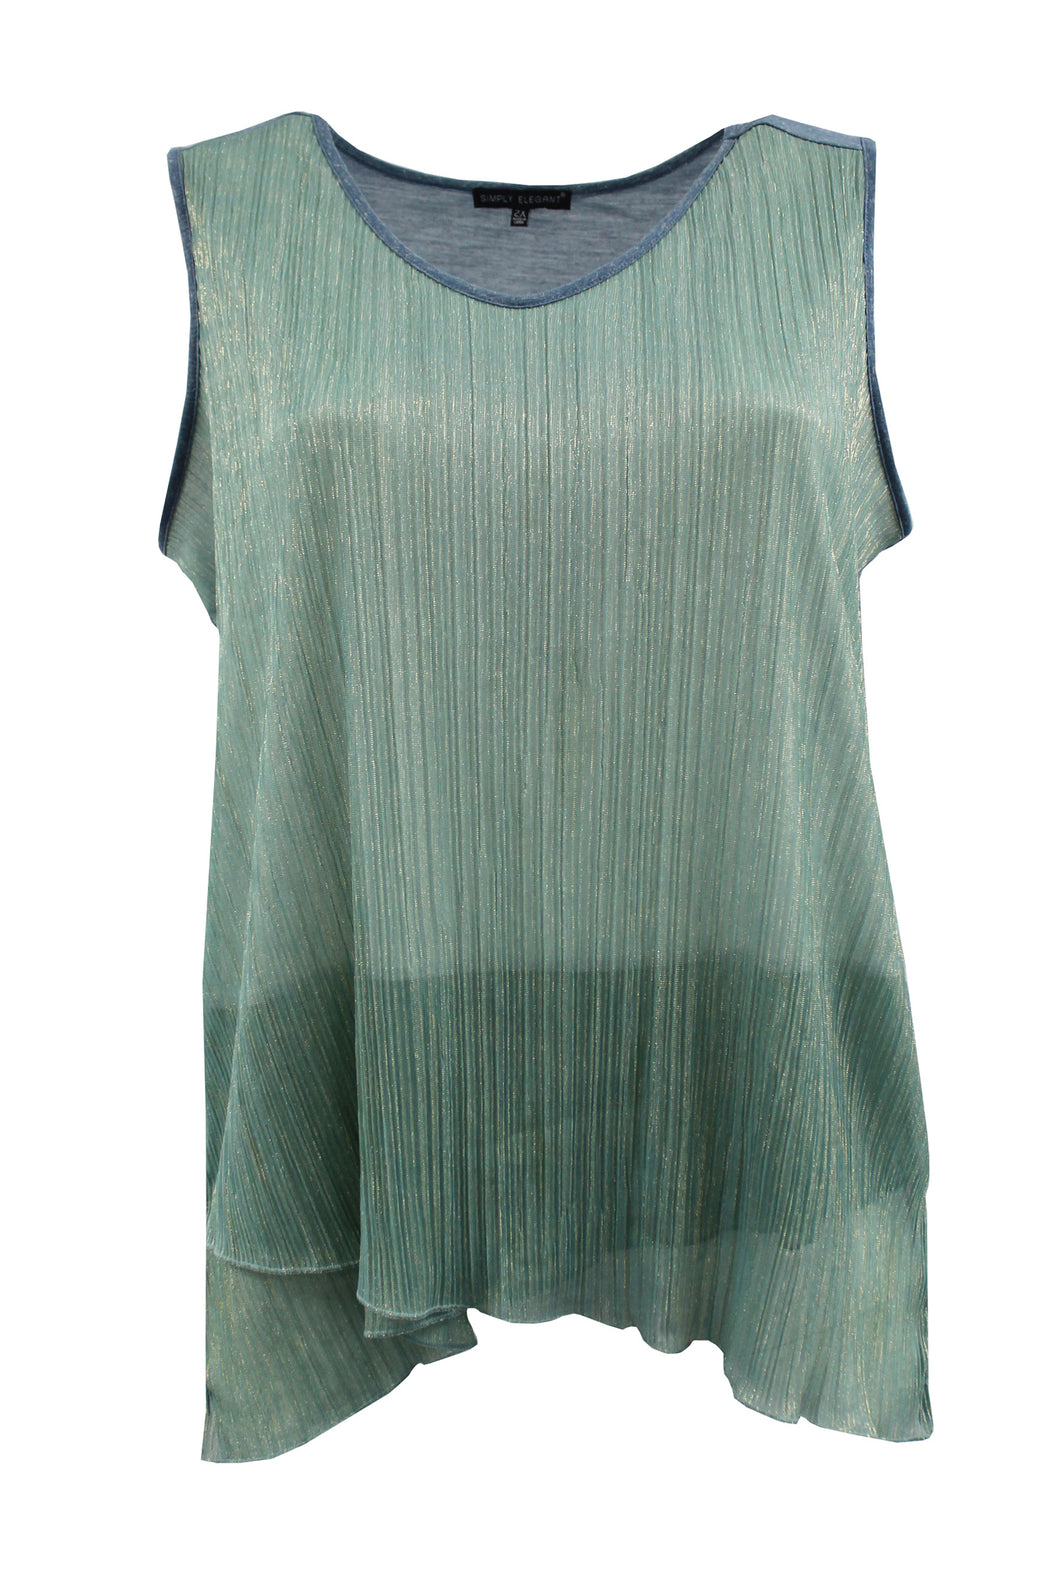 Shimmer Sea Foam Green Tank Top